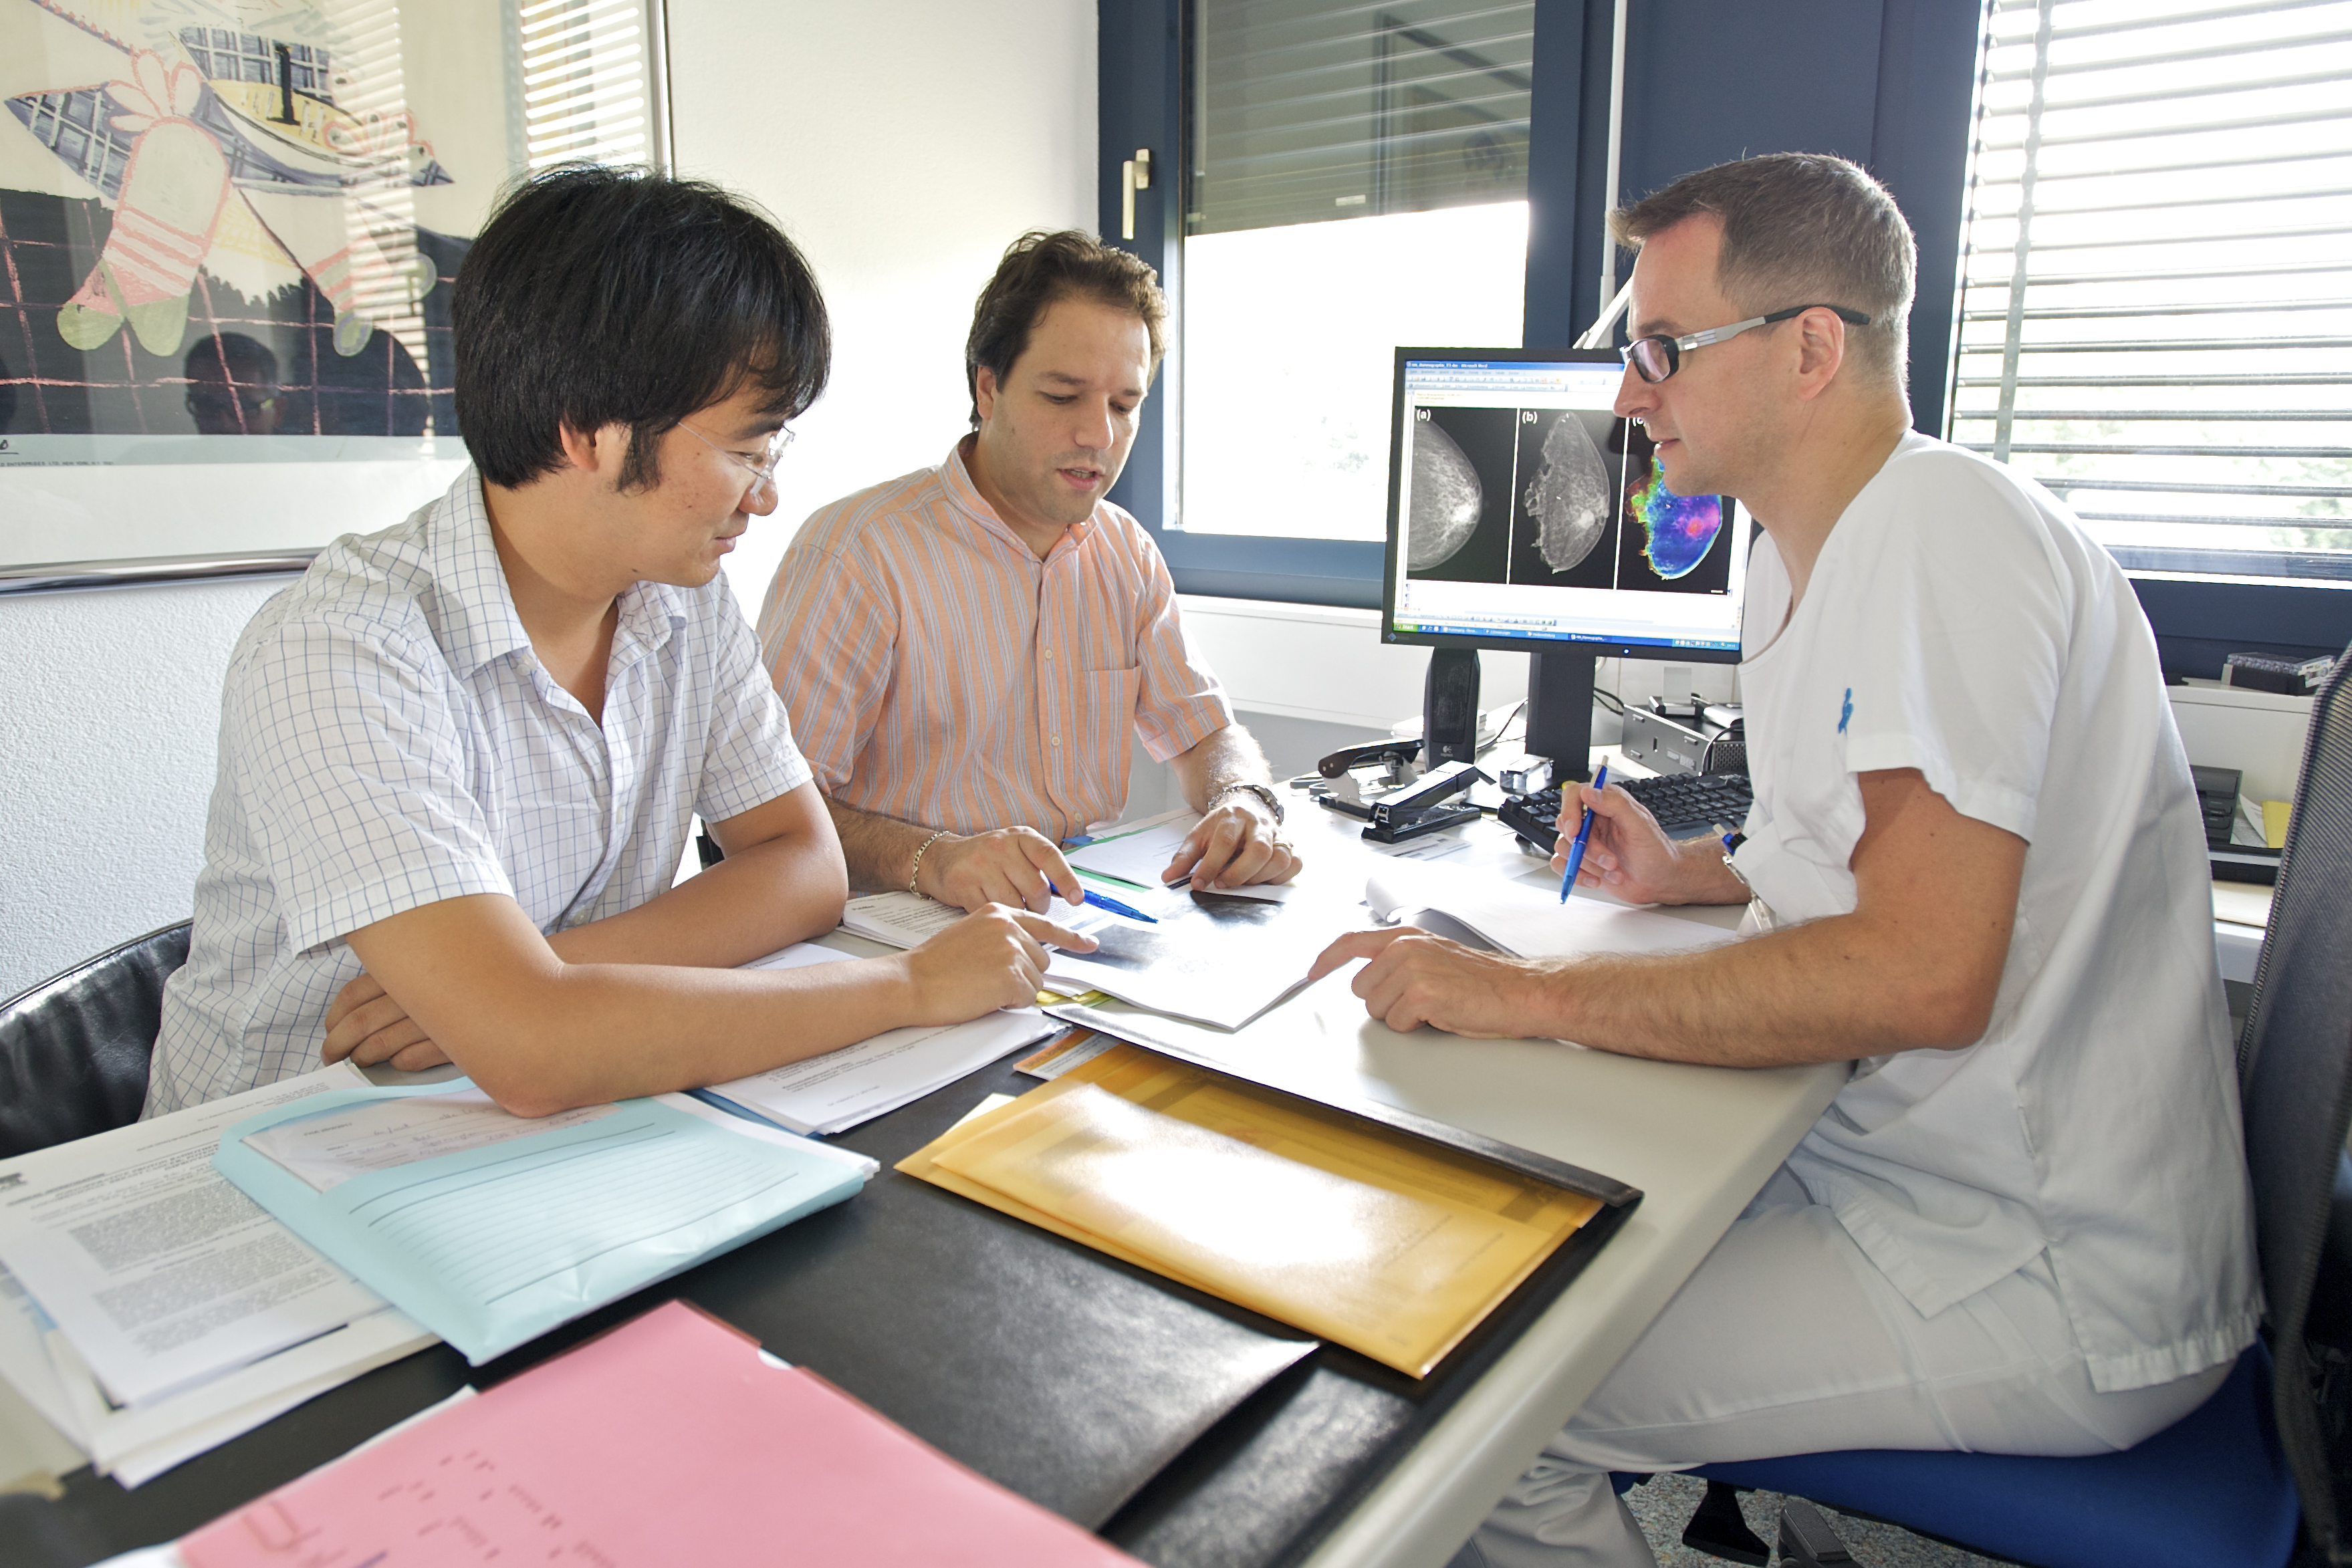 Prof. Dr. M. Stampanoni (centre) and Dr. Nik Hauser (right) discuss the results of the innovative mammography procedure with Dr. Zhentian Wang (left), who carried out the investigations at PSI. (PSI/M.Fischer)